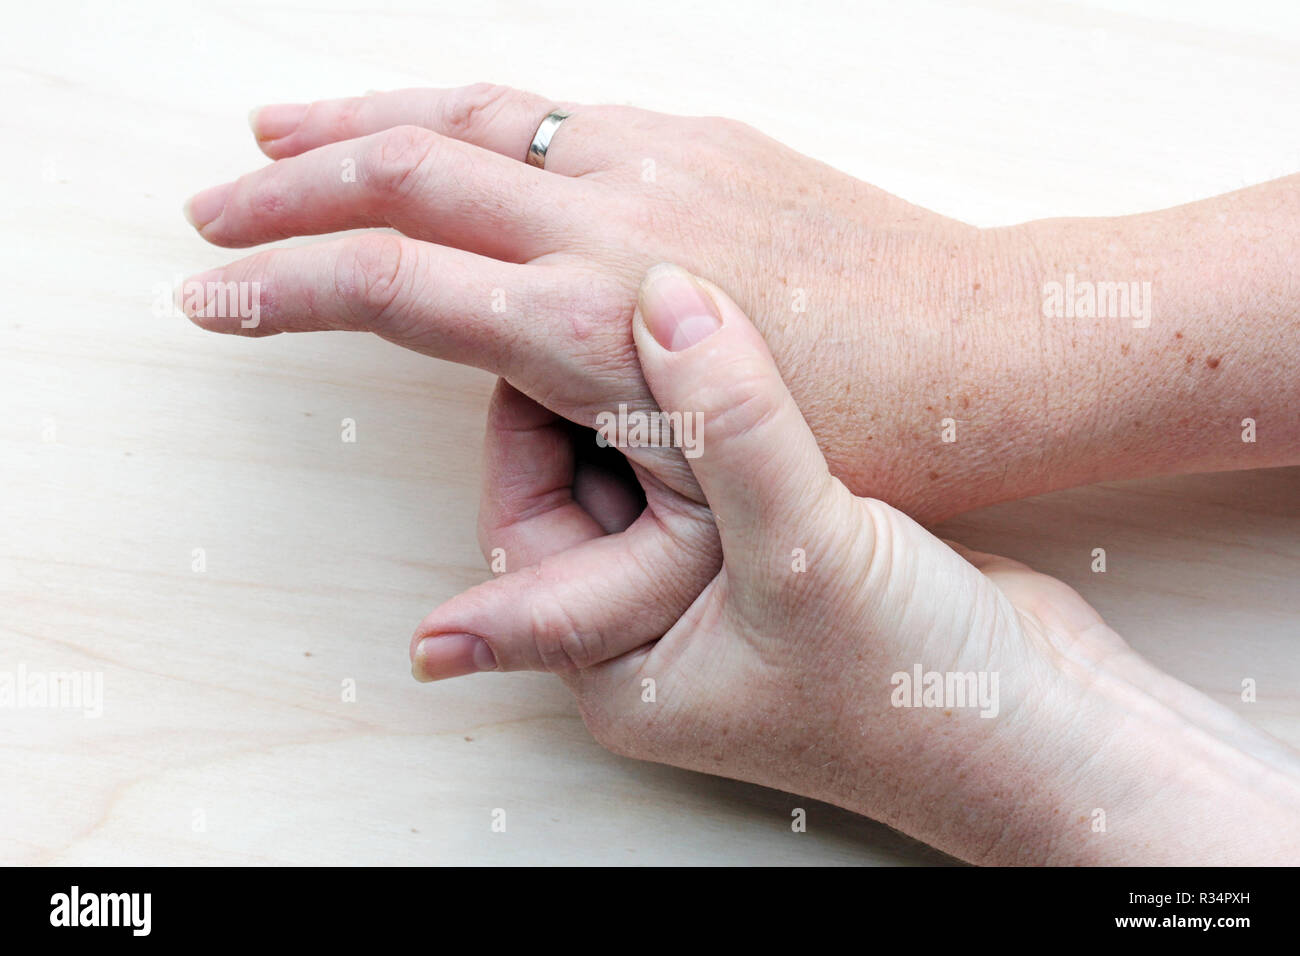 aching hands - Stock Image